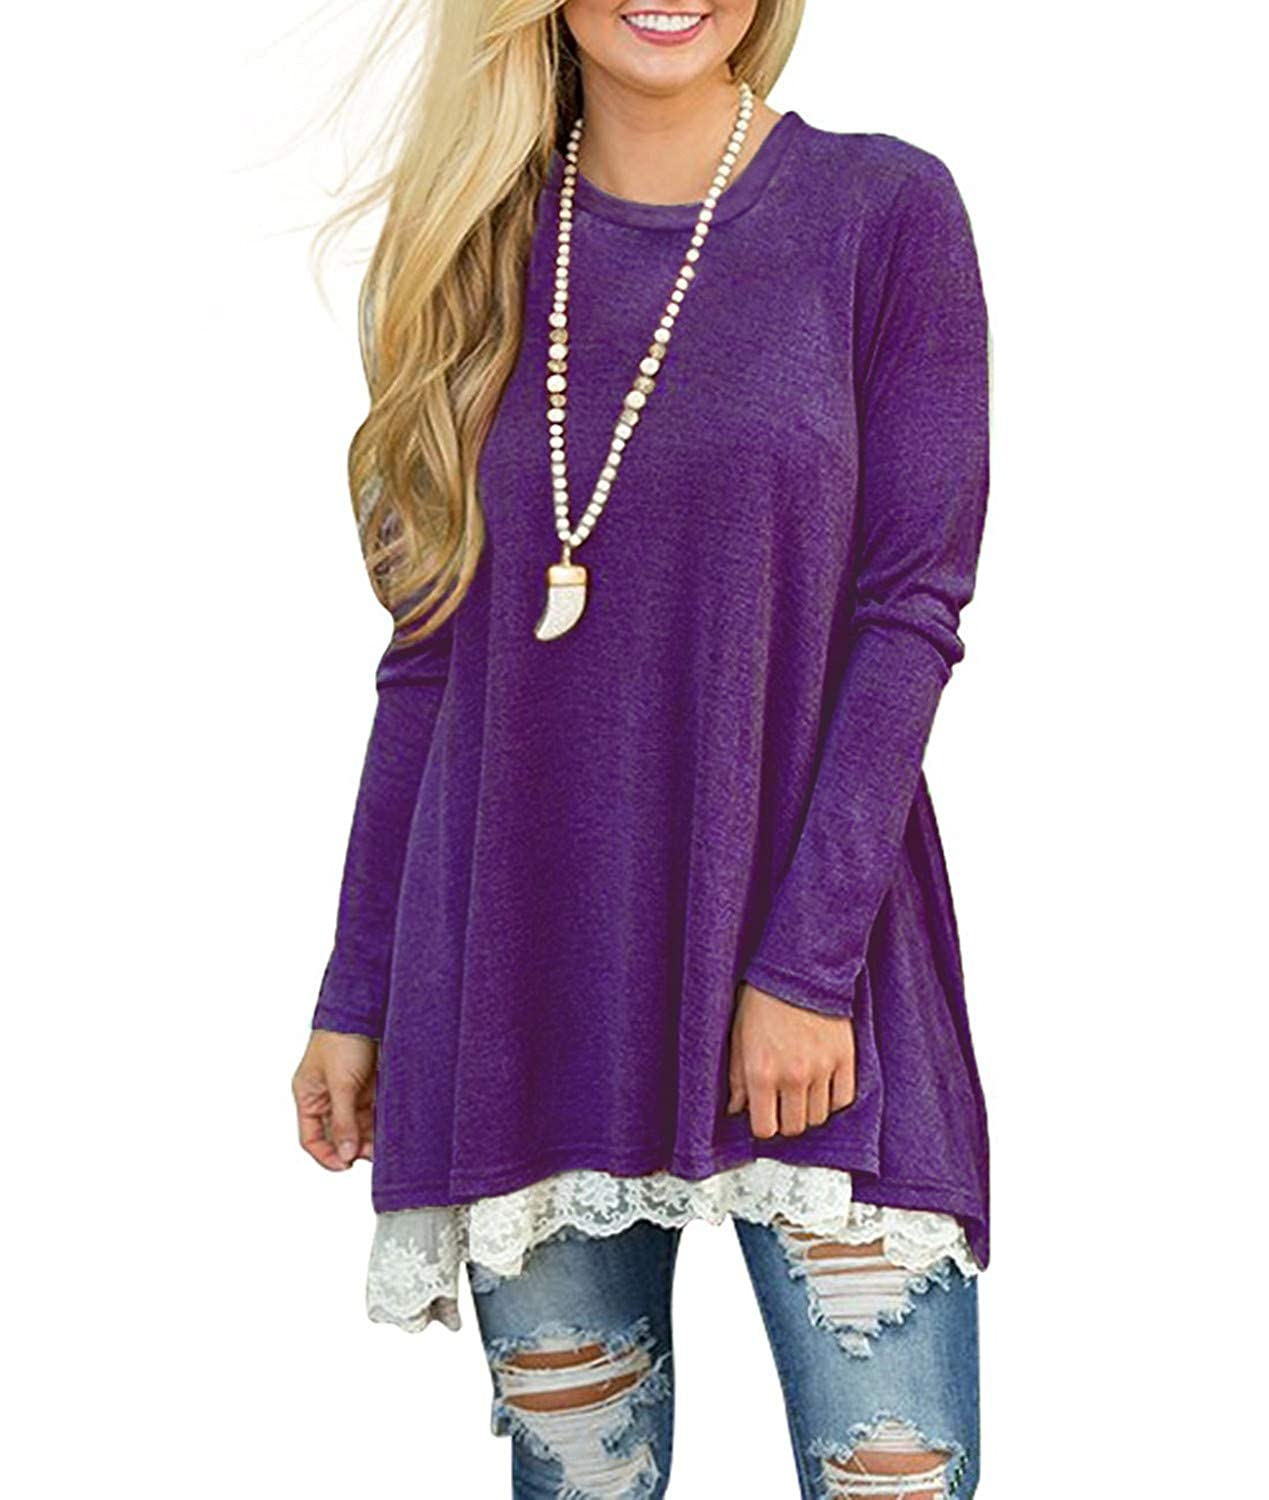 WEKILI Womens Tops Long Sleeve Lace Scoop Neck A-line Tunic Blouse